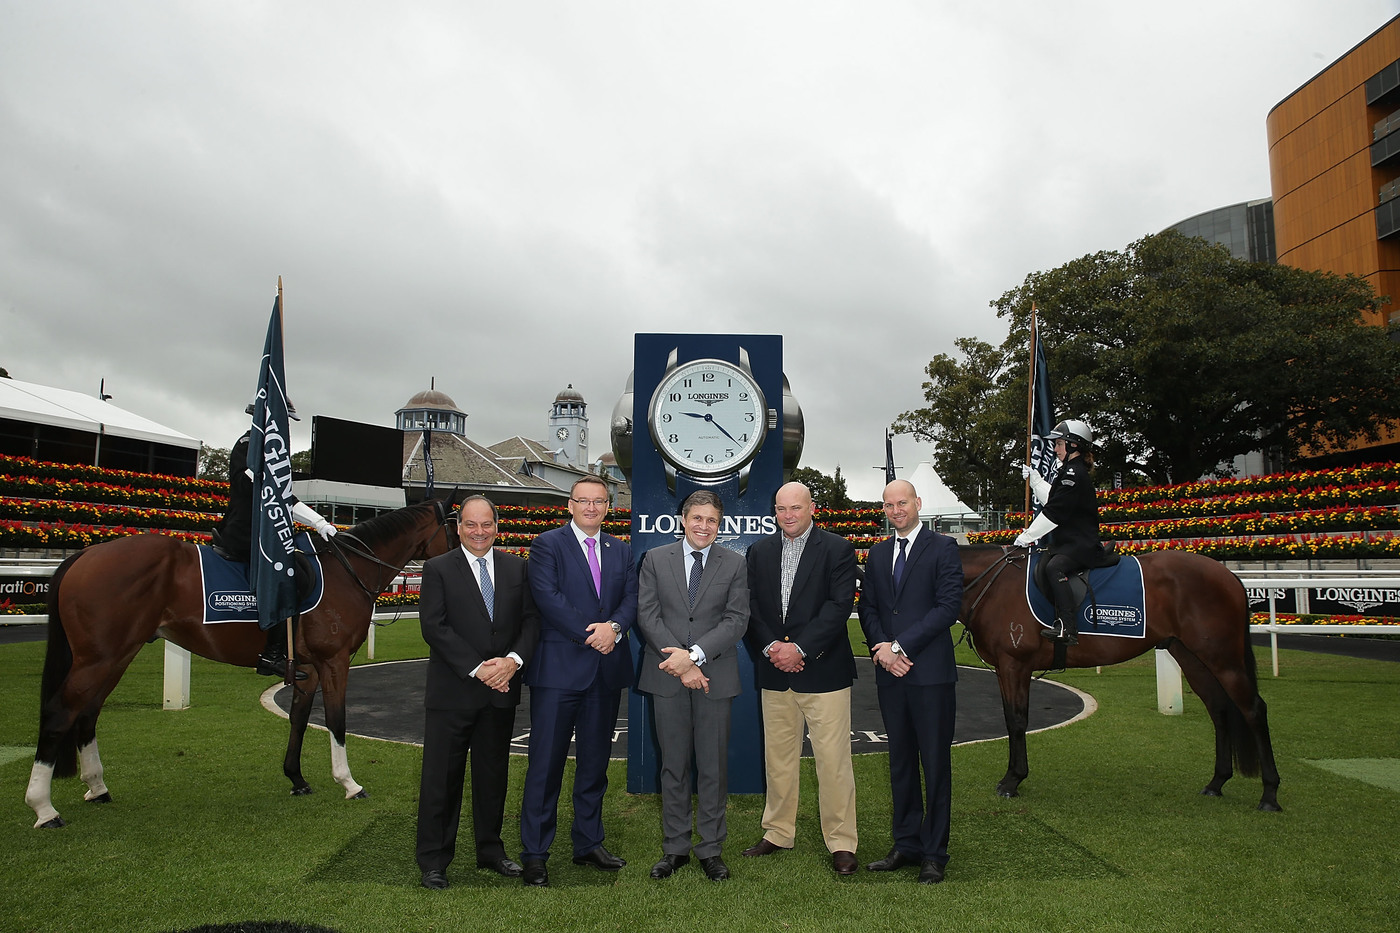 Longines Flat Racing Event: Game-changer for horseracing as Longines unveils the Longines Positioning System 2